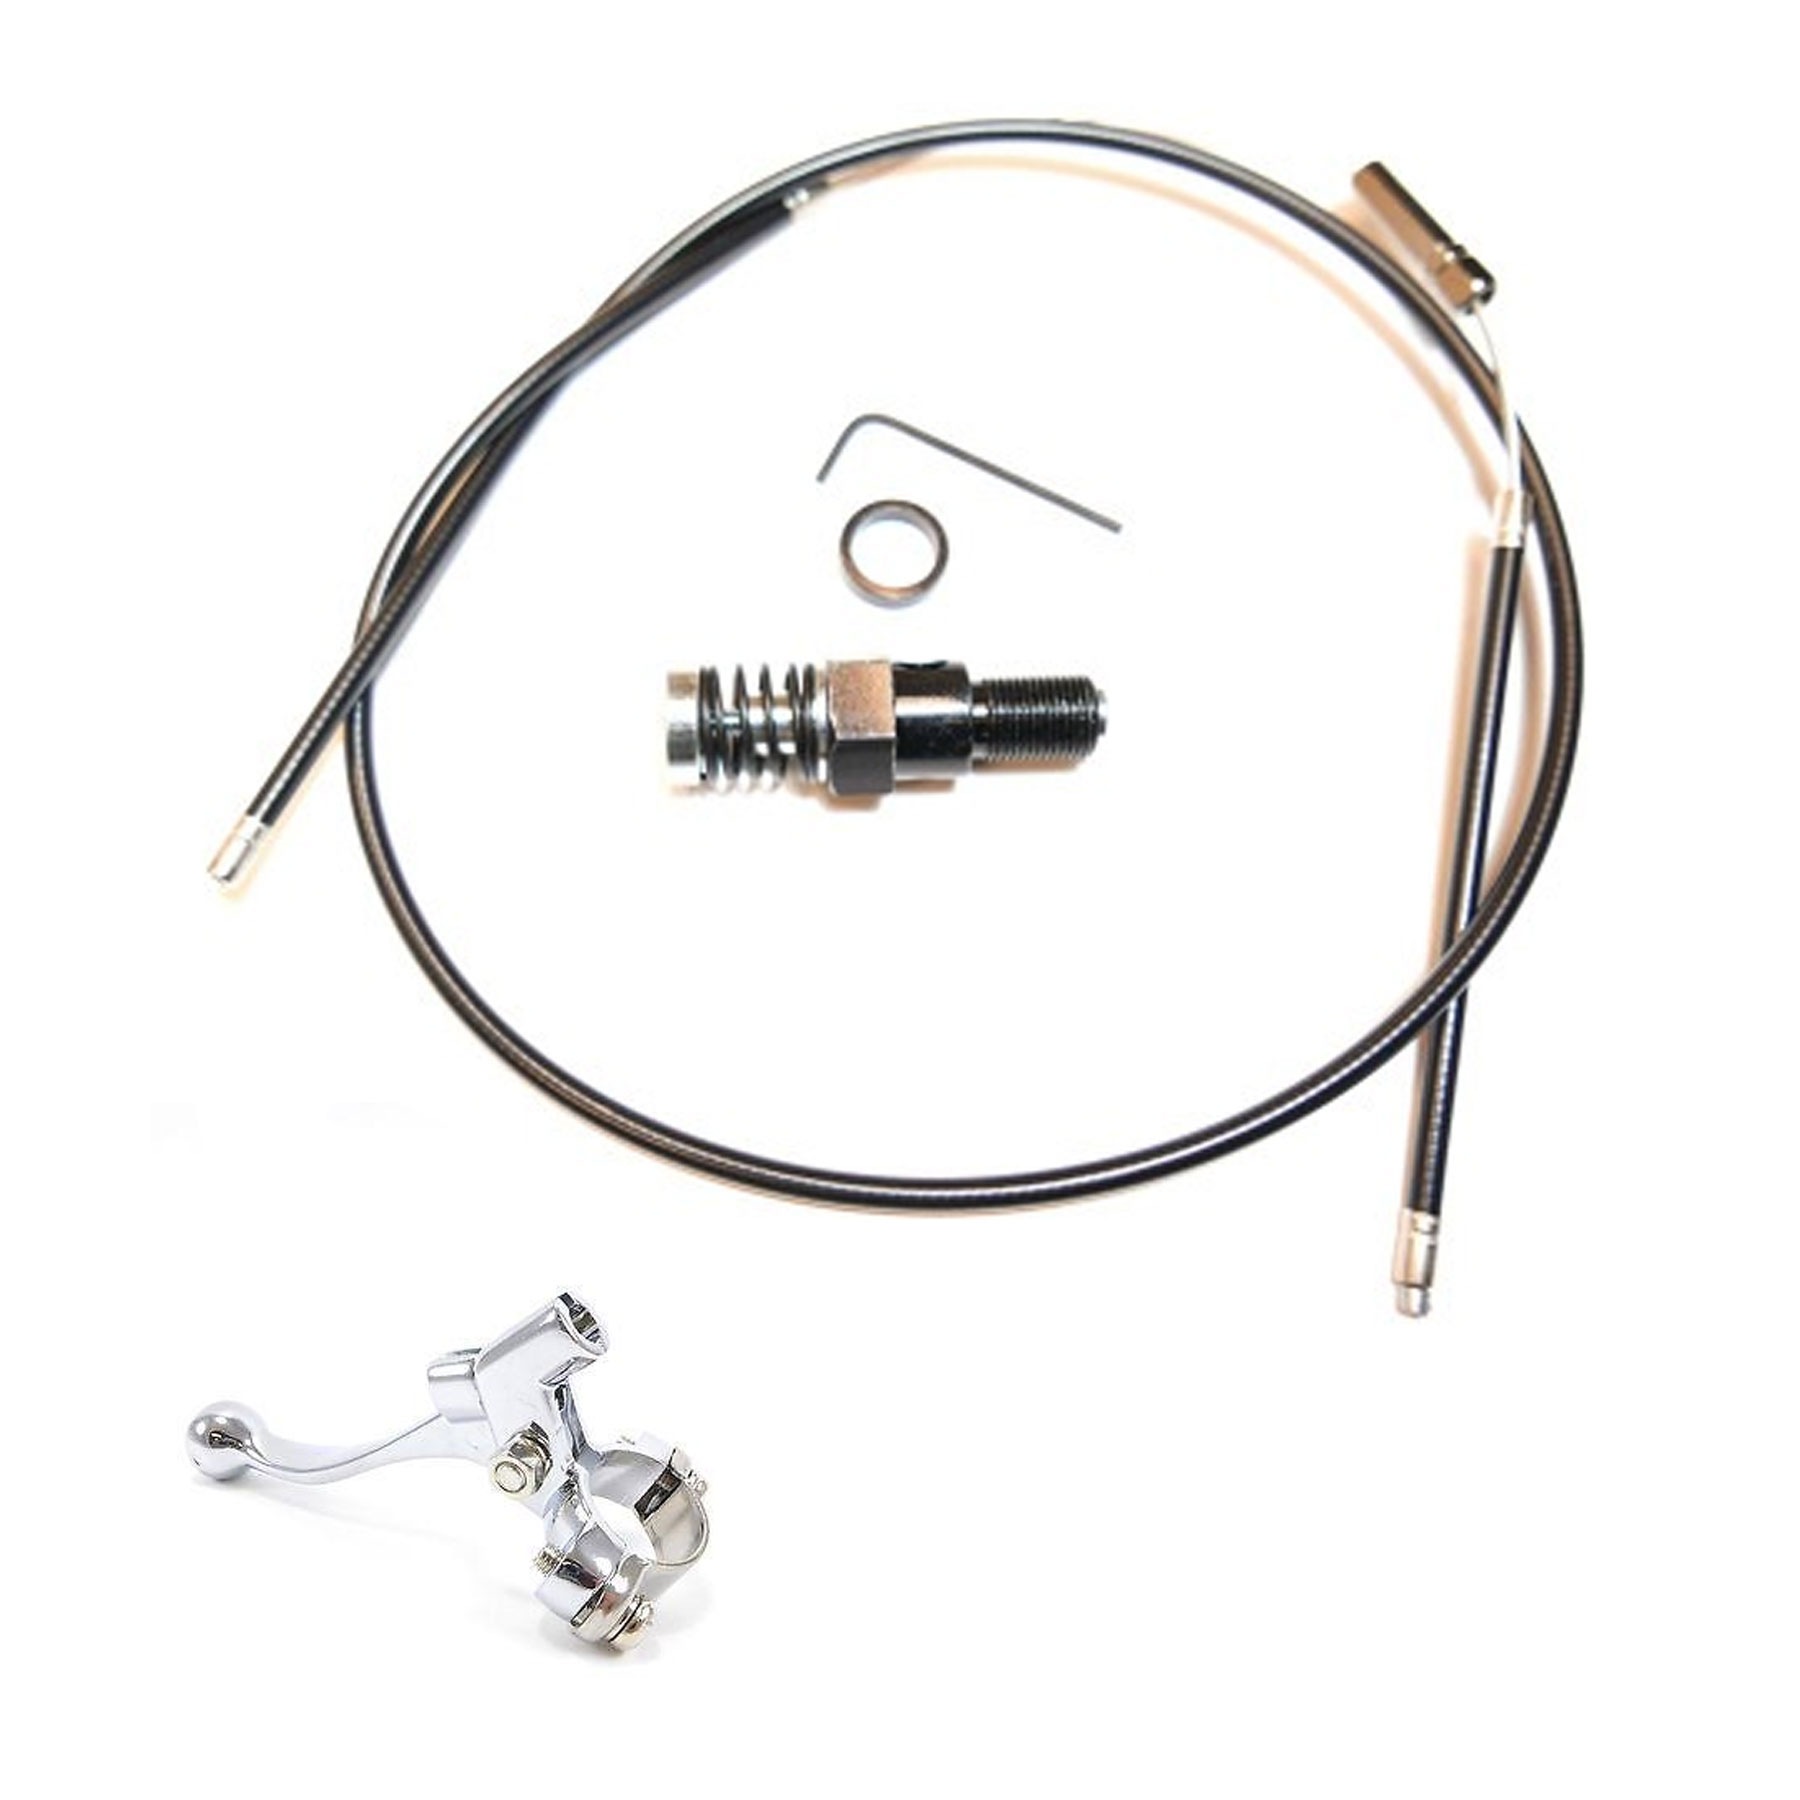 14mm Compression Release Decompression Kit For 2 Cycle